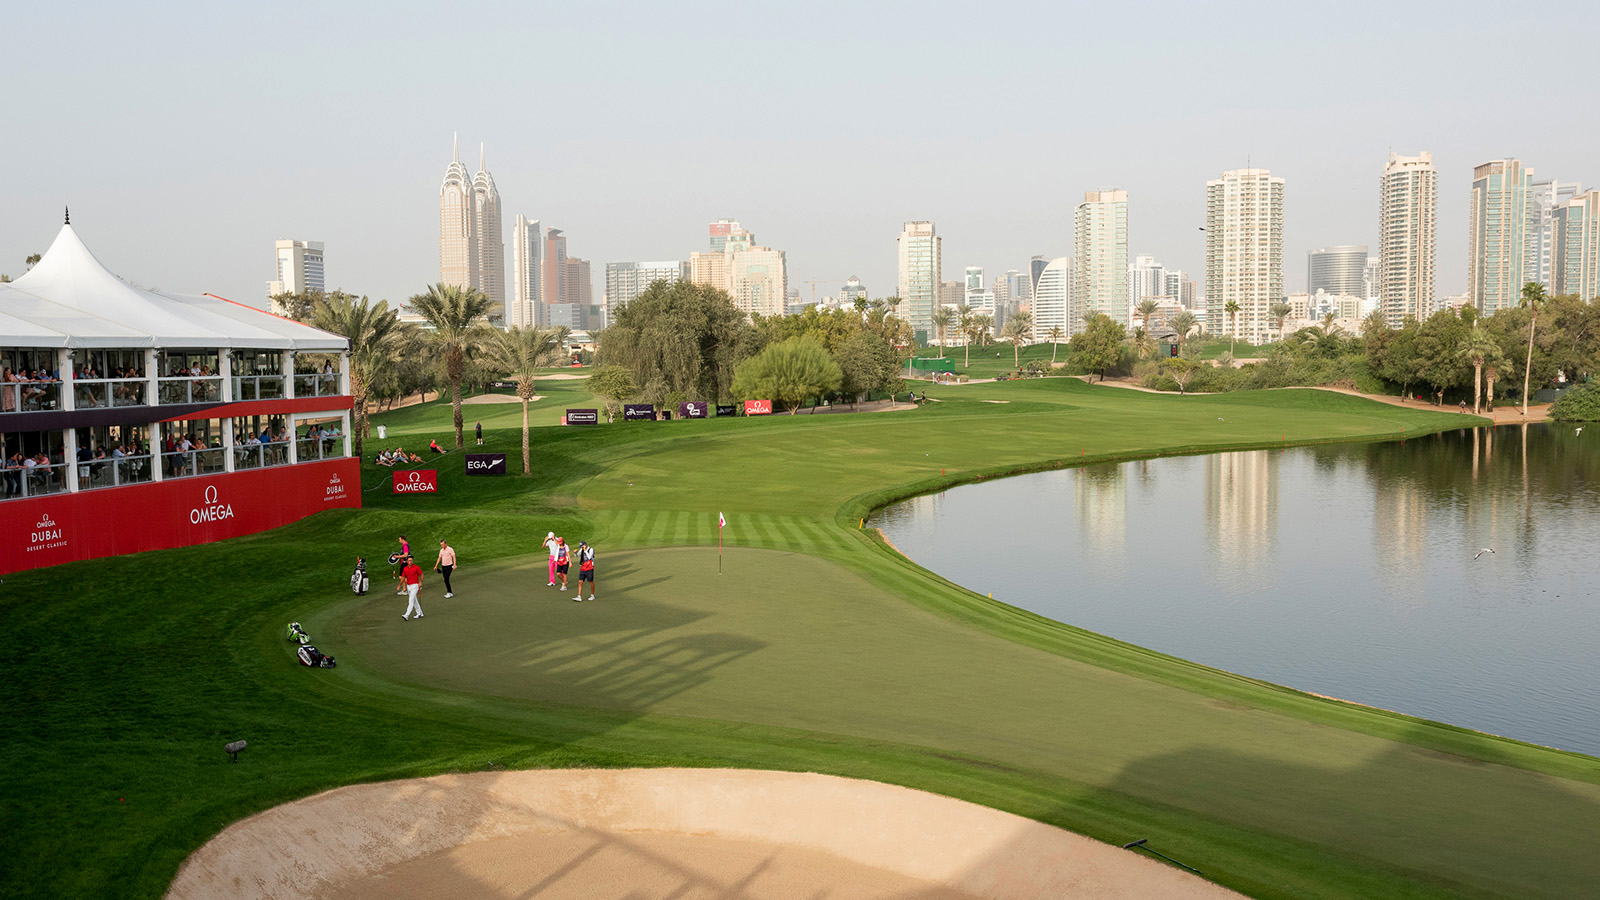 Talented golfers competing on the renowned Majlis Course at the Emirates Golf Club